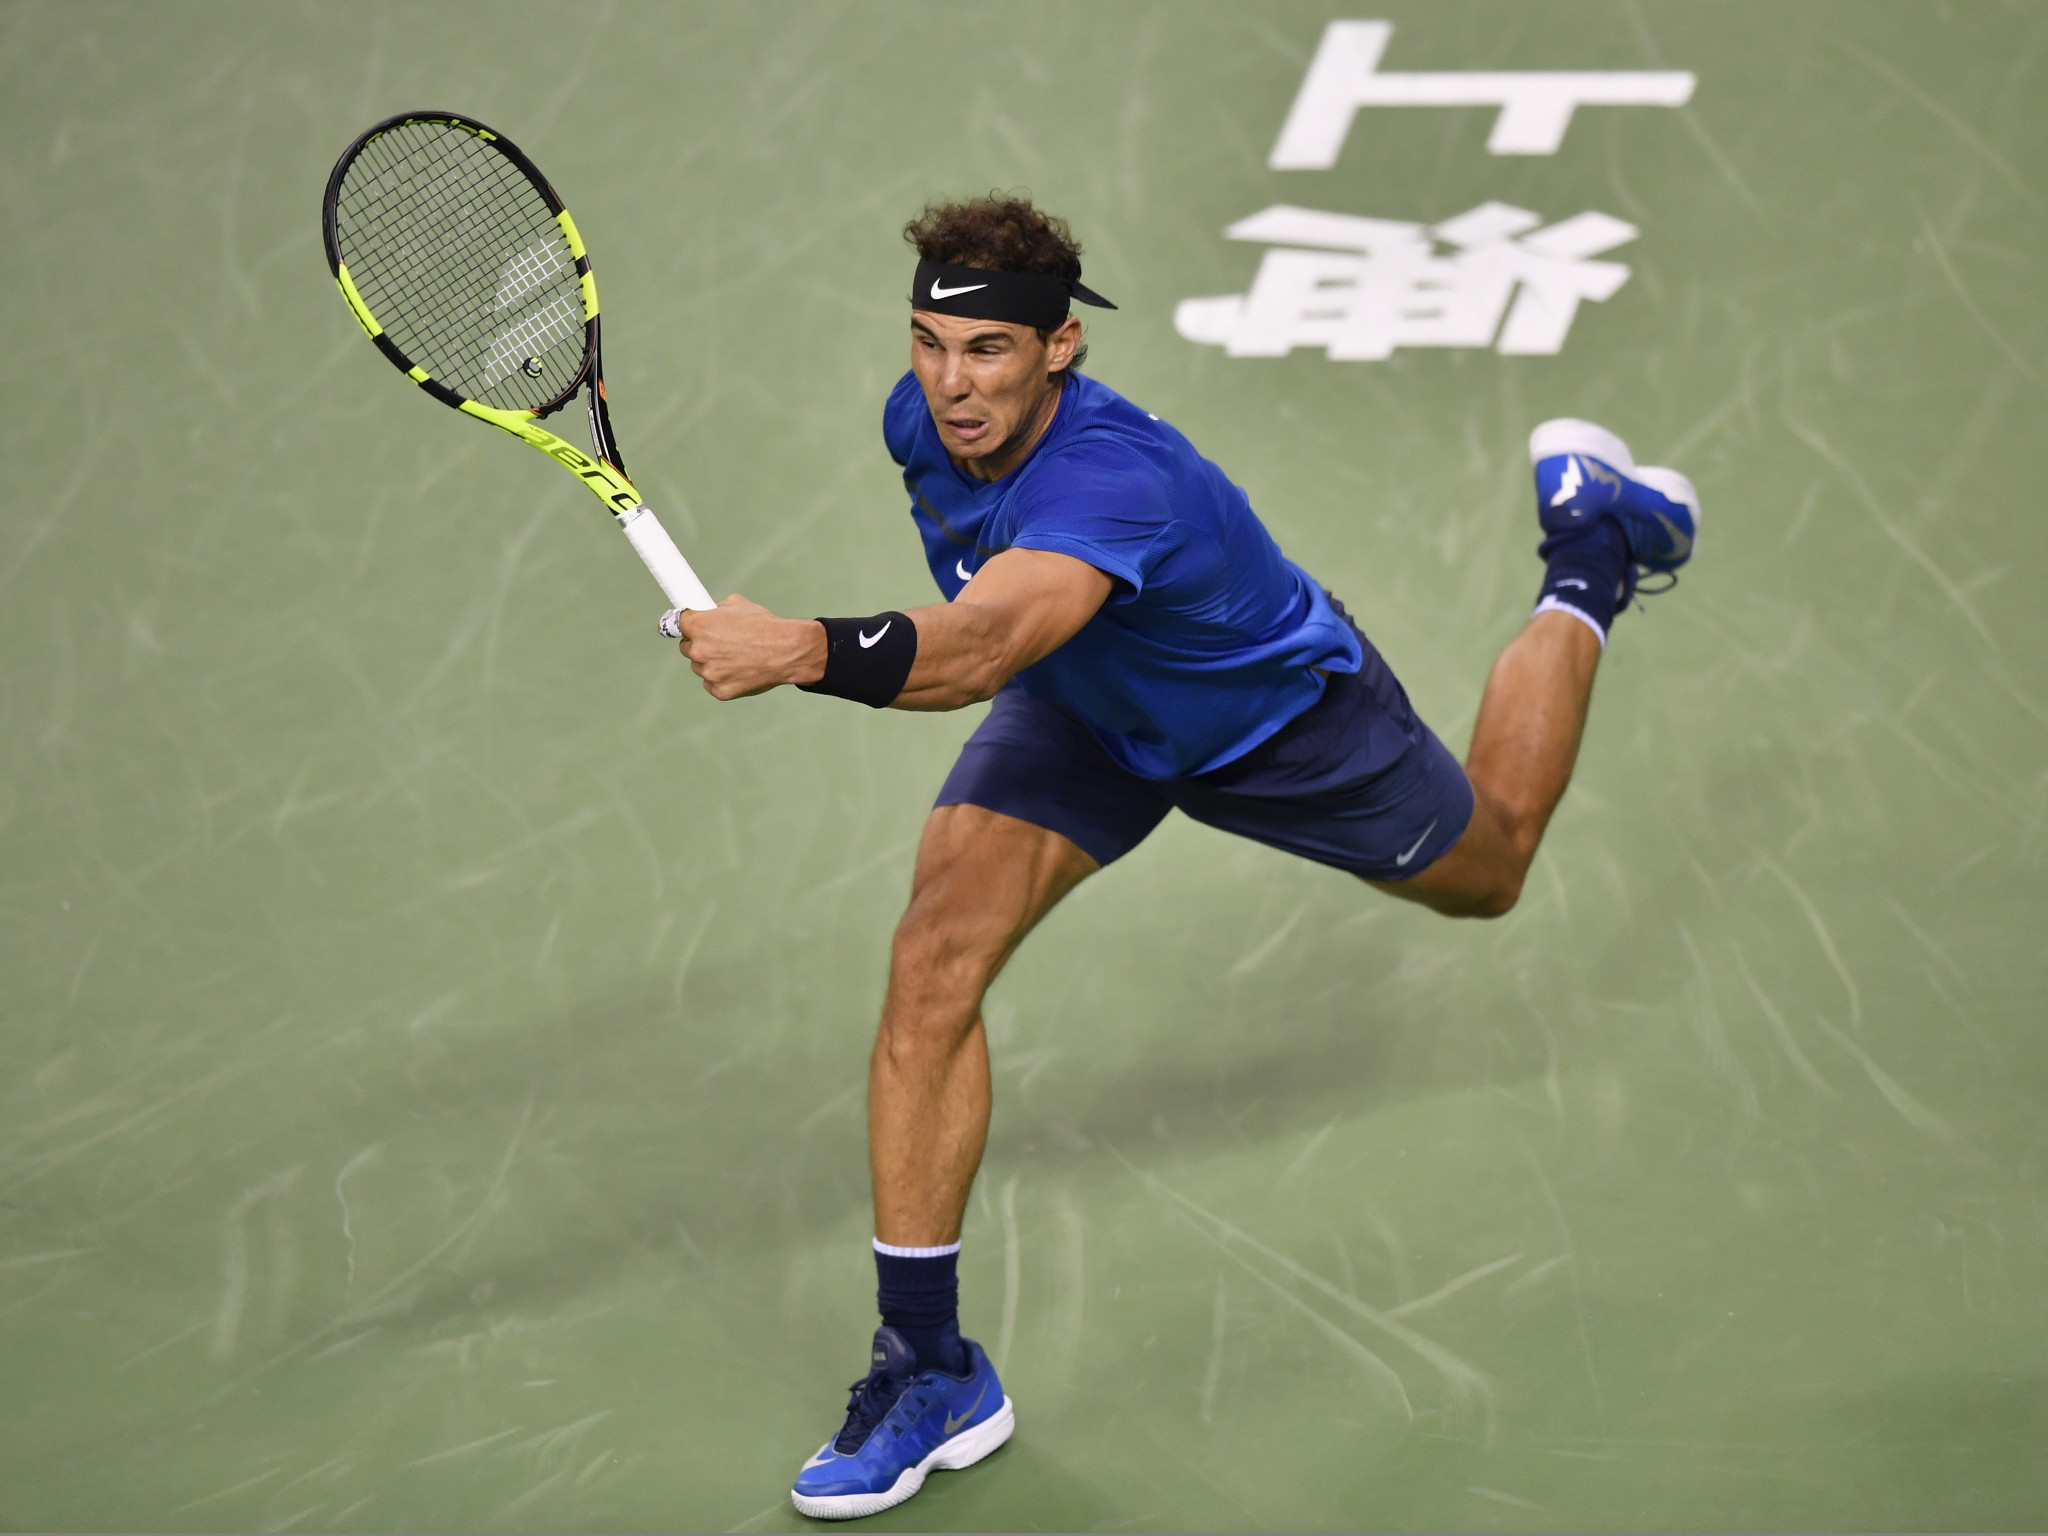 Nadal and Federer progress as Kyrgios fined for walking off court at Shanghai Masters